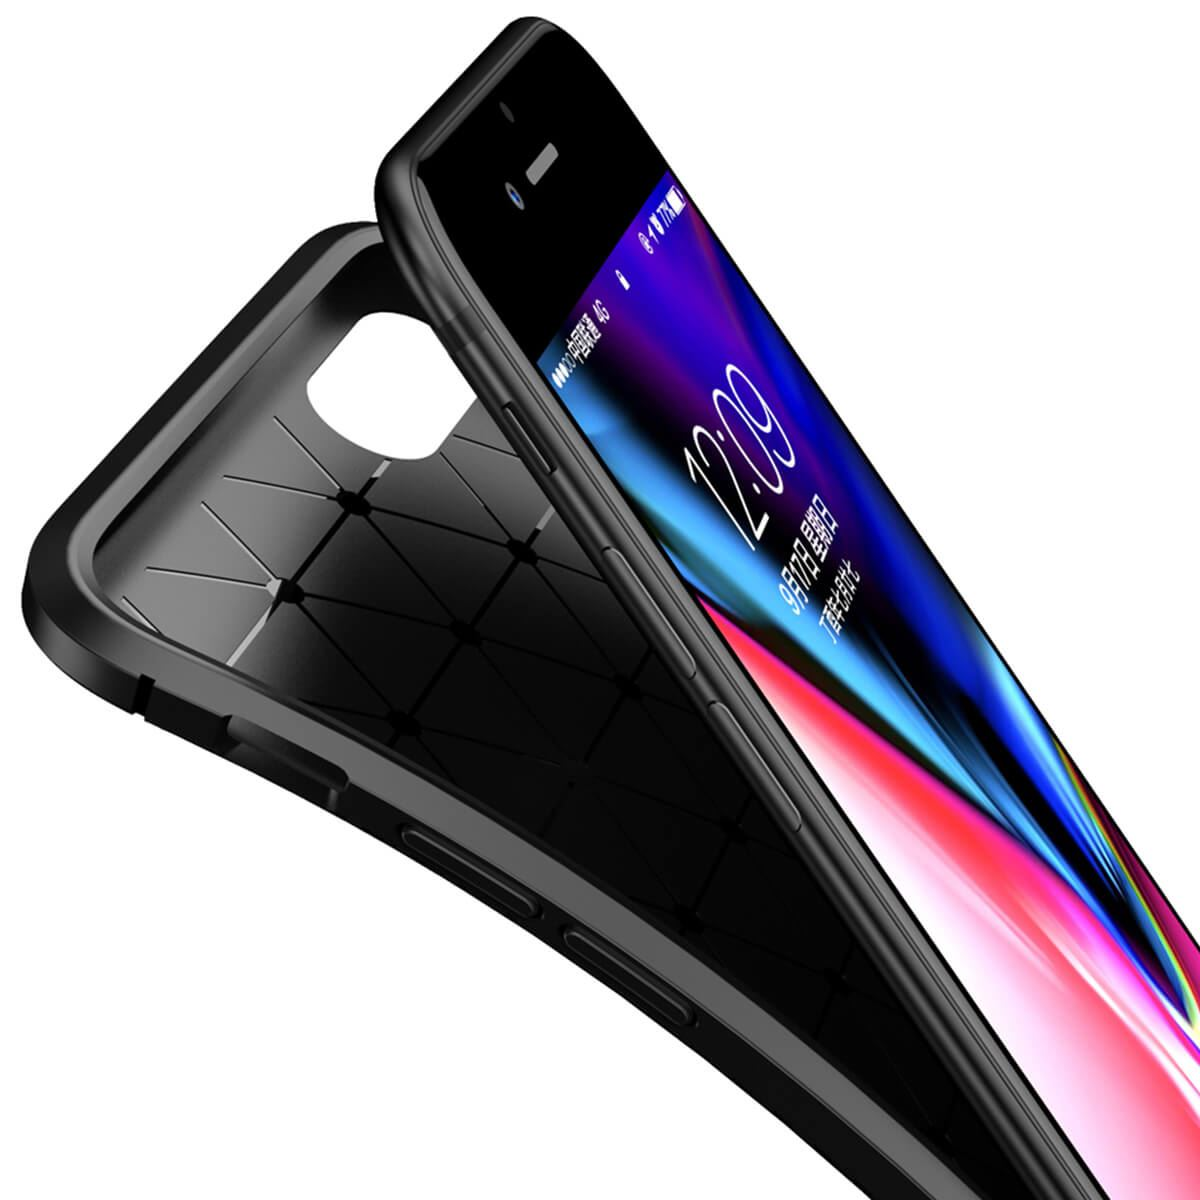 Carbon-Fibre-Soft-Case-For-iPhone-11-X-XR-Max-8-7-6-Plus-Slim-TPU-Silicone-Cover thumbnail 4